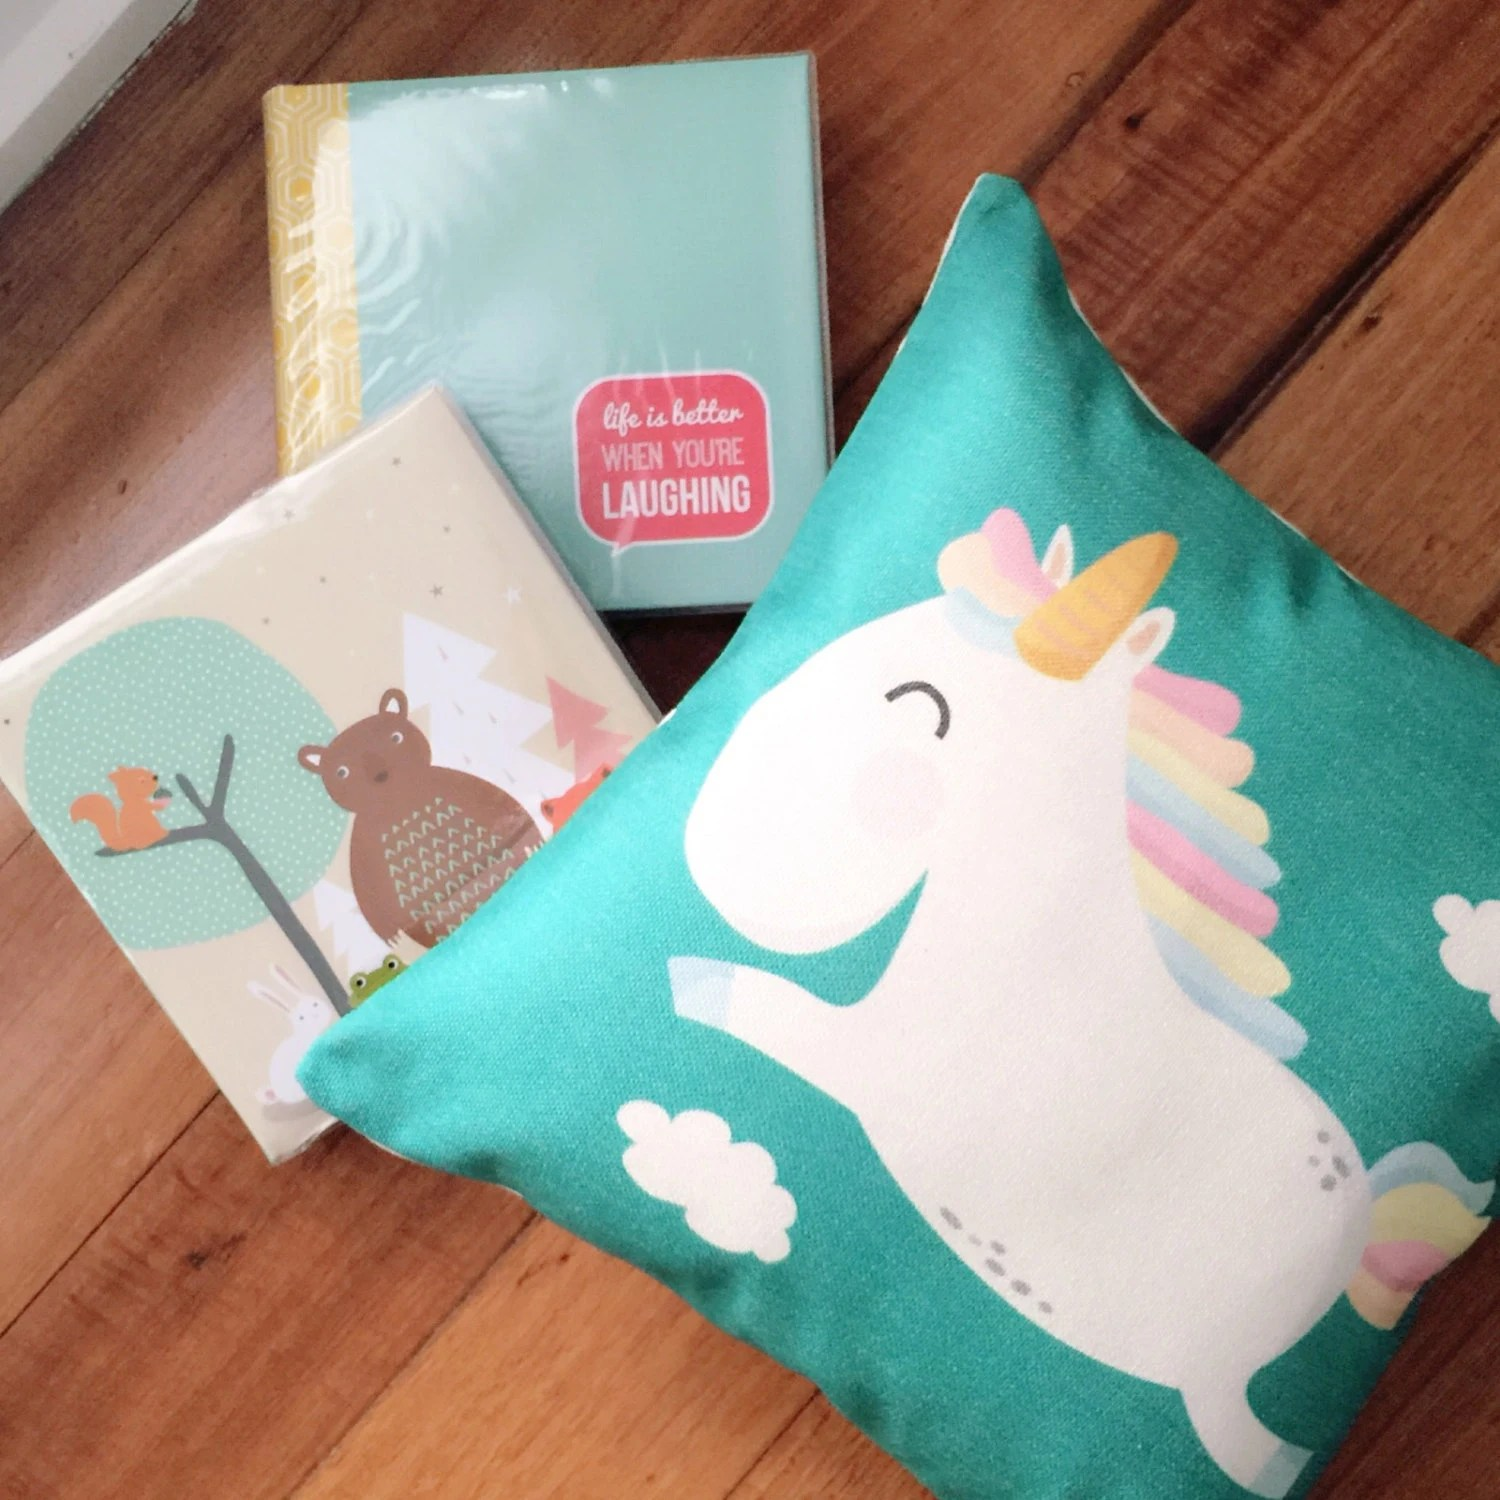 chair covers lincraft boss black leatherplus executive dreamy unicorn green flying cushion cover cute